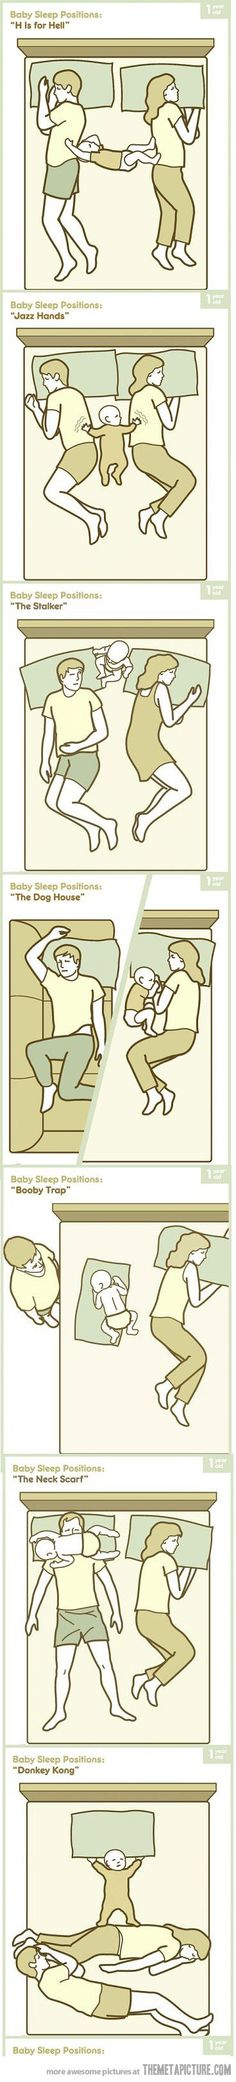 Baby sleeping positions